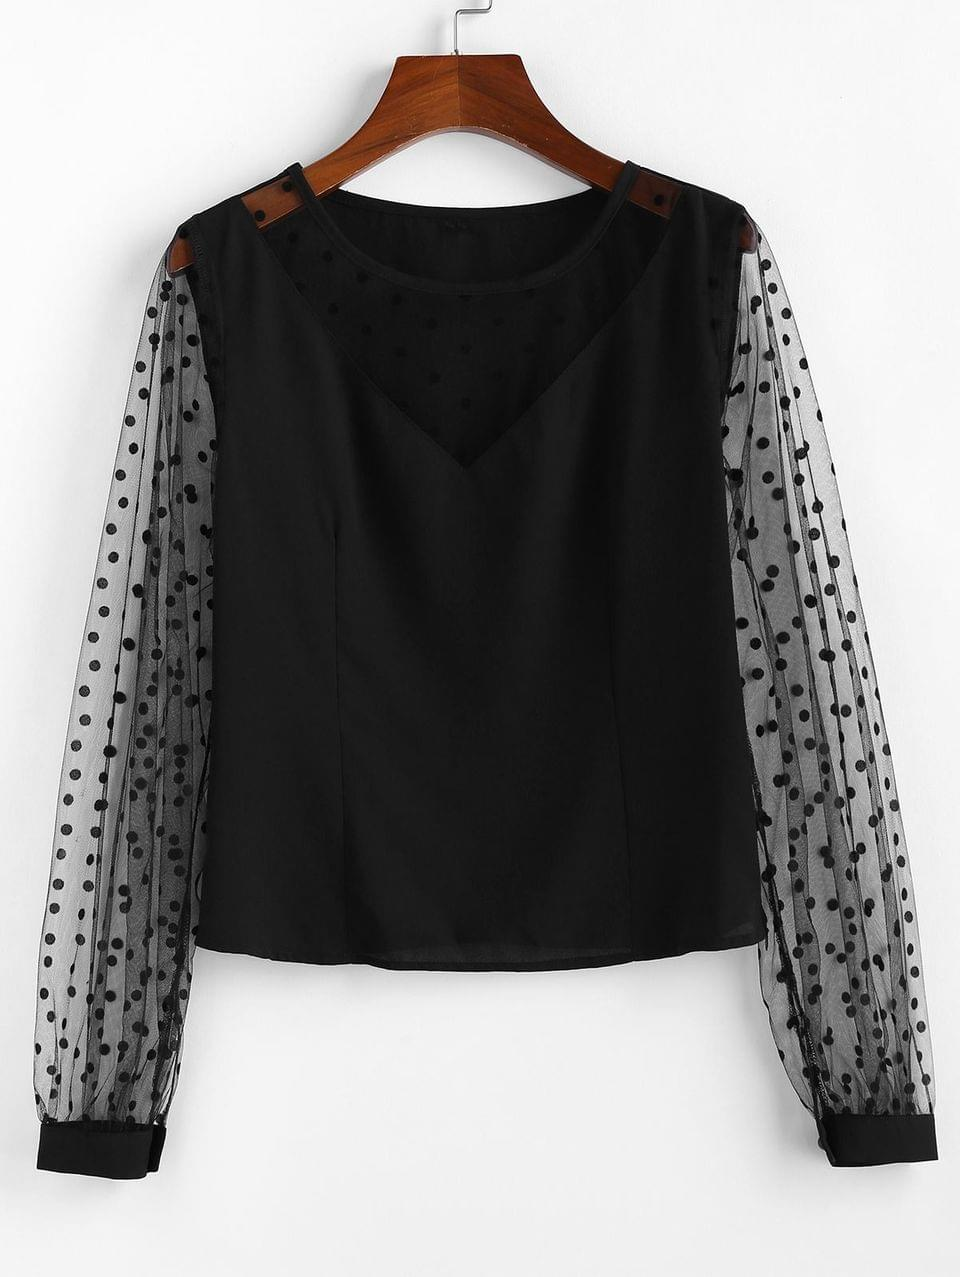 Women's Sheer Swiss Dot Mesh Panel Top - Black L